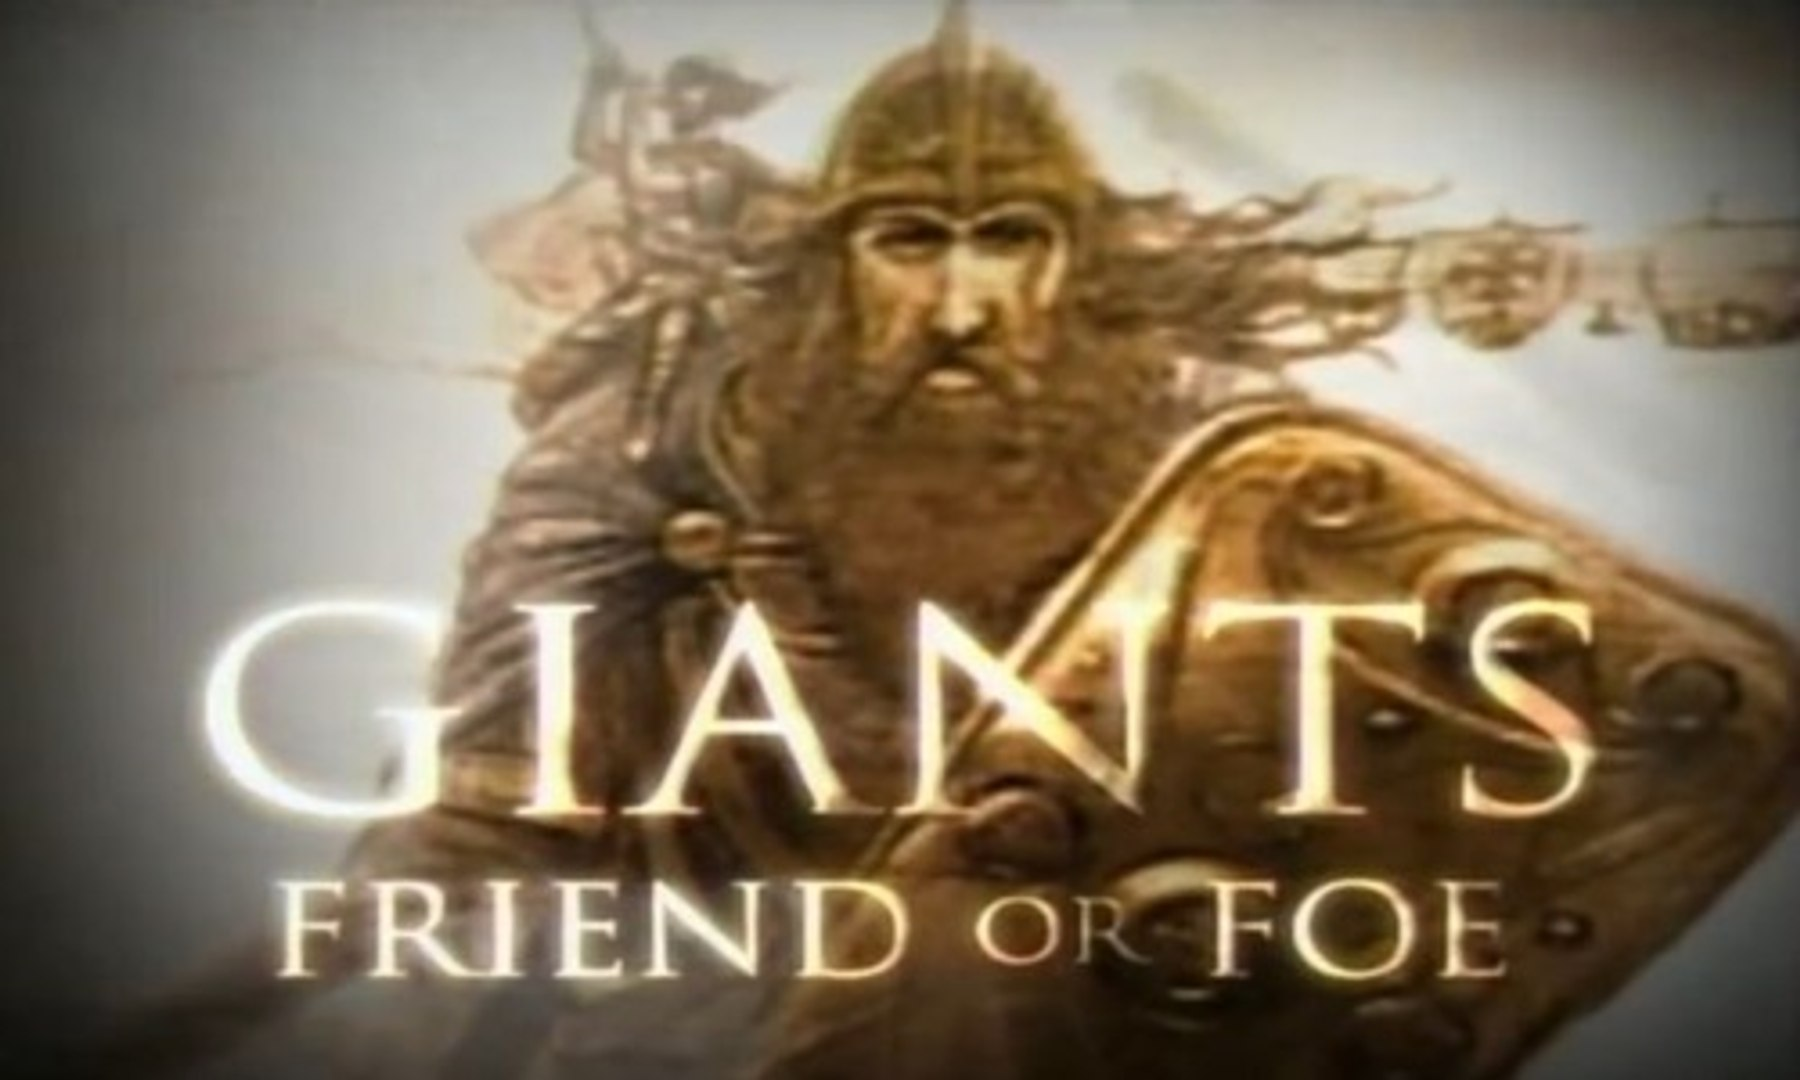 Giants/Friend or Foe (Part one) - Vídeo Dailymotion